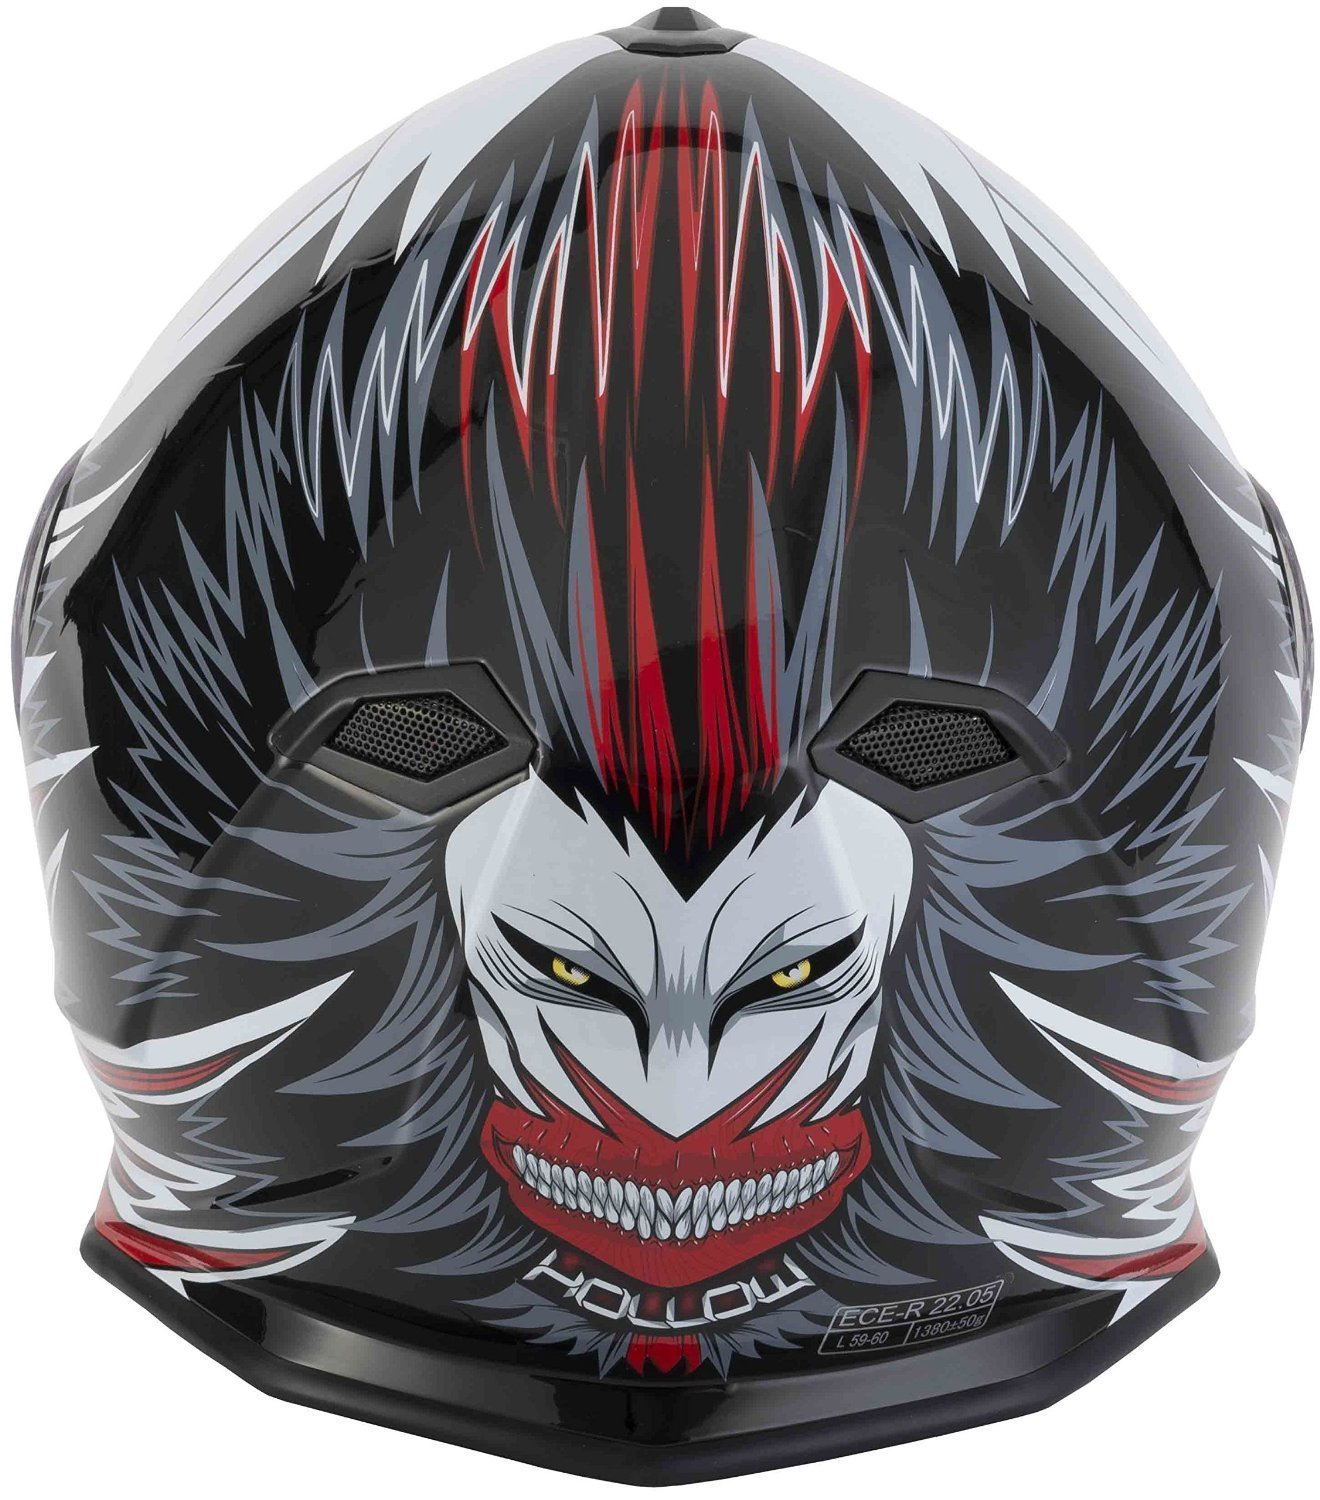 53 to 54cm XS NEW STYLE VCAN V127 HOLLOW RED GRAPHIC MOTORCYCLE MOTORBIKE SCOOTER CRASH TRACK HELMET QUICK SPORTS FULL FACE ACU